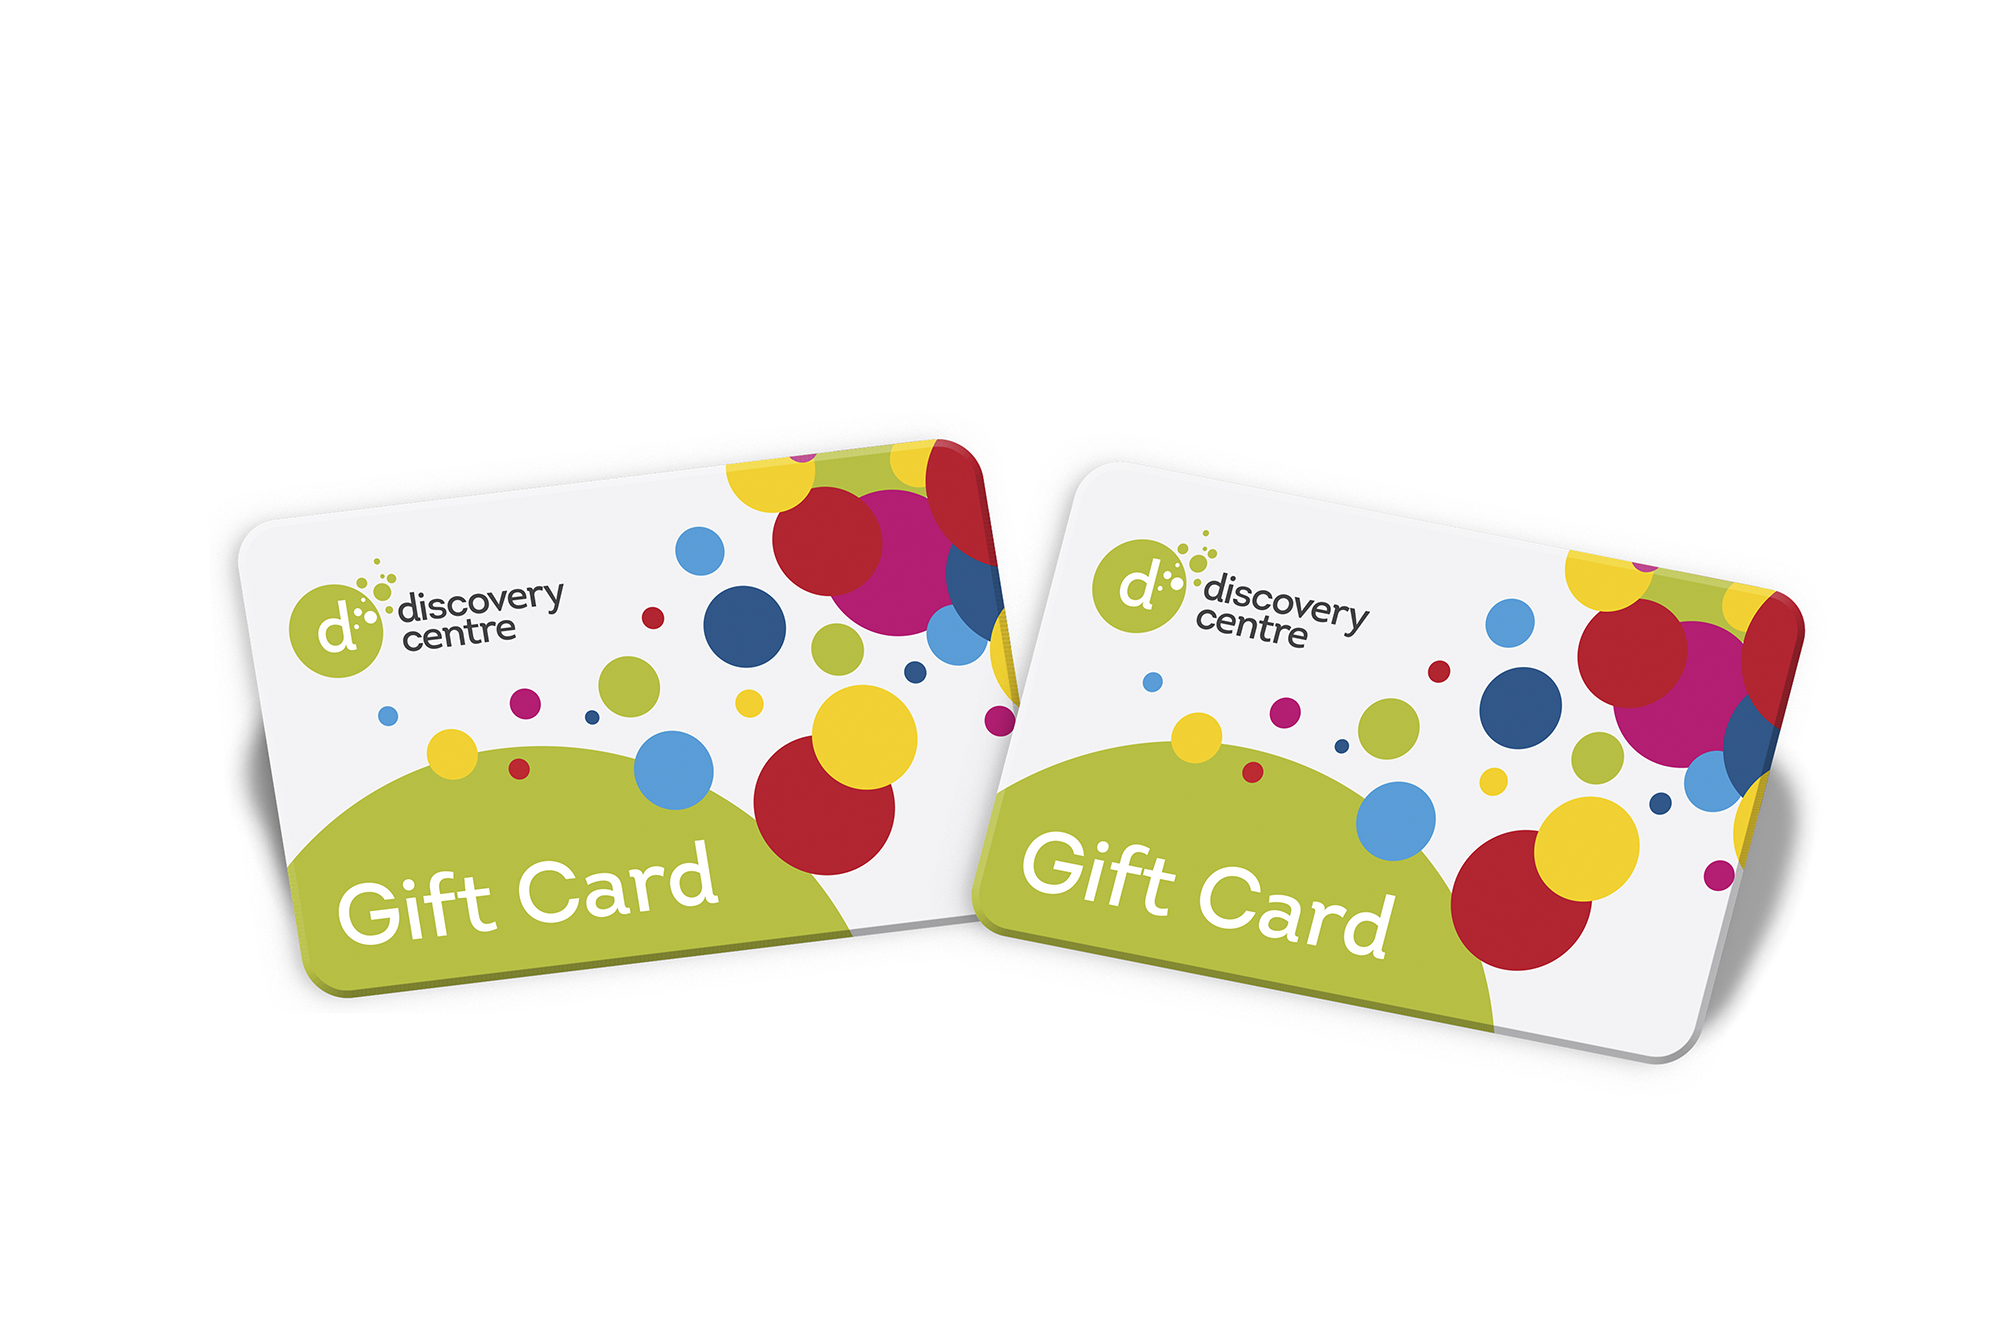 Discovery Centre Gift Card